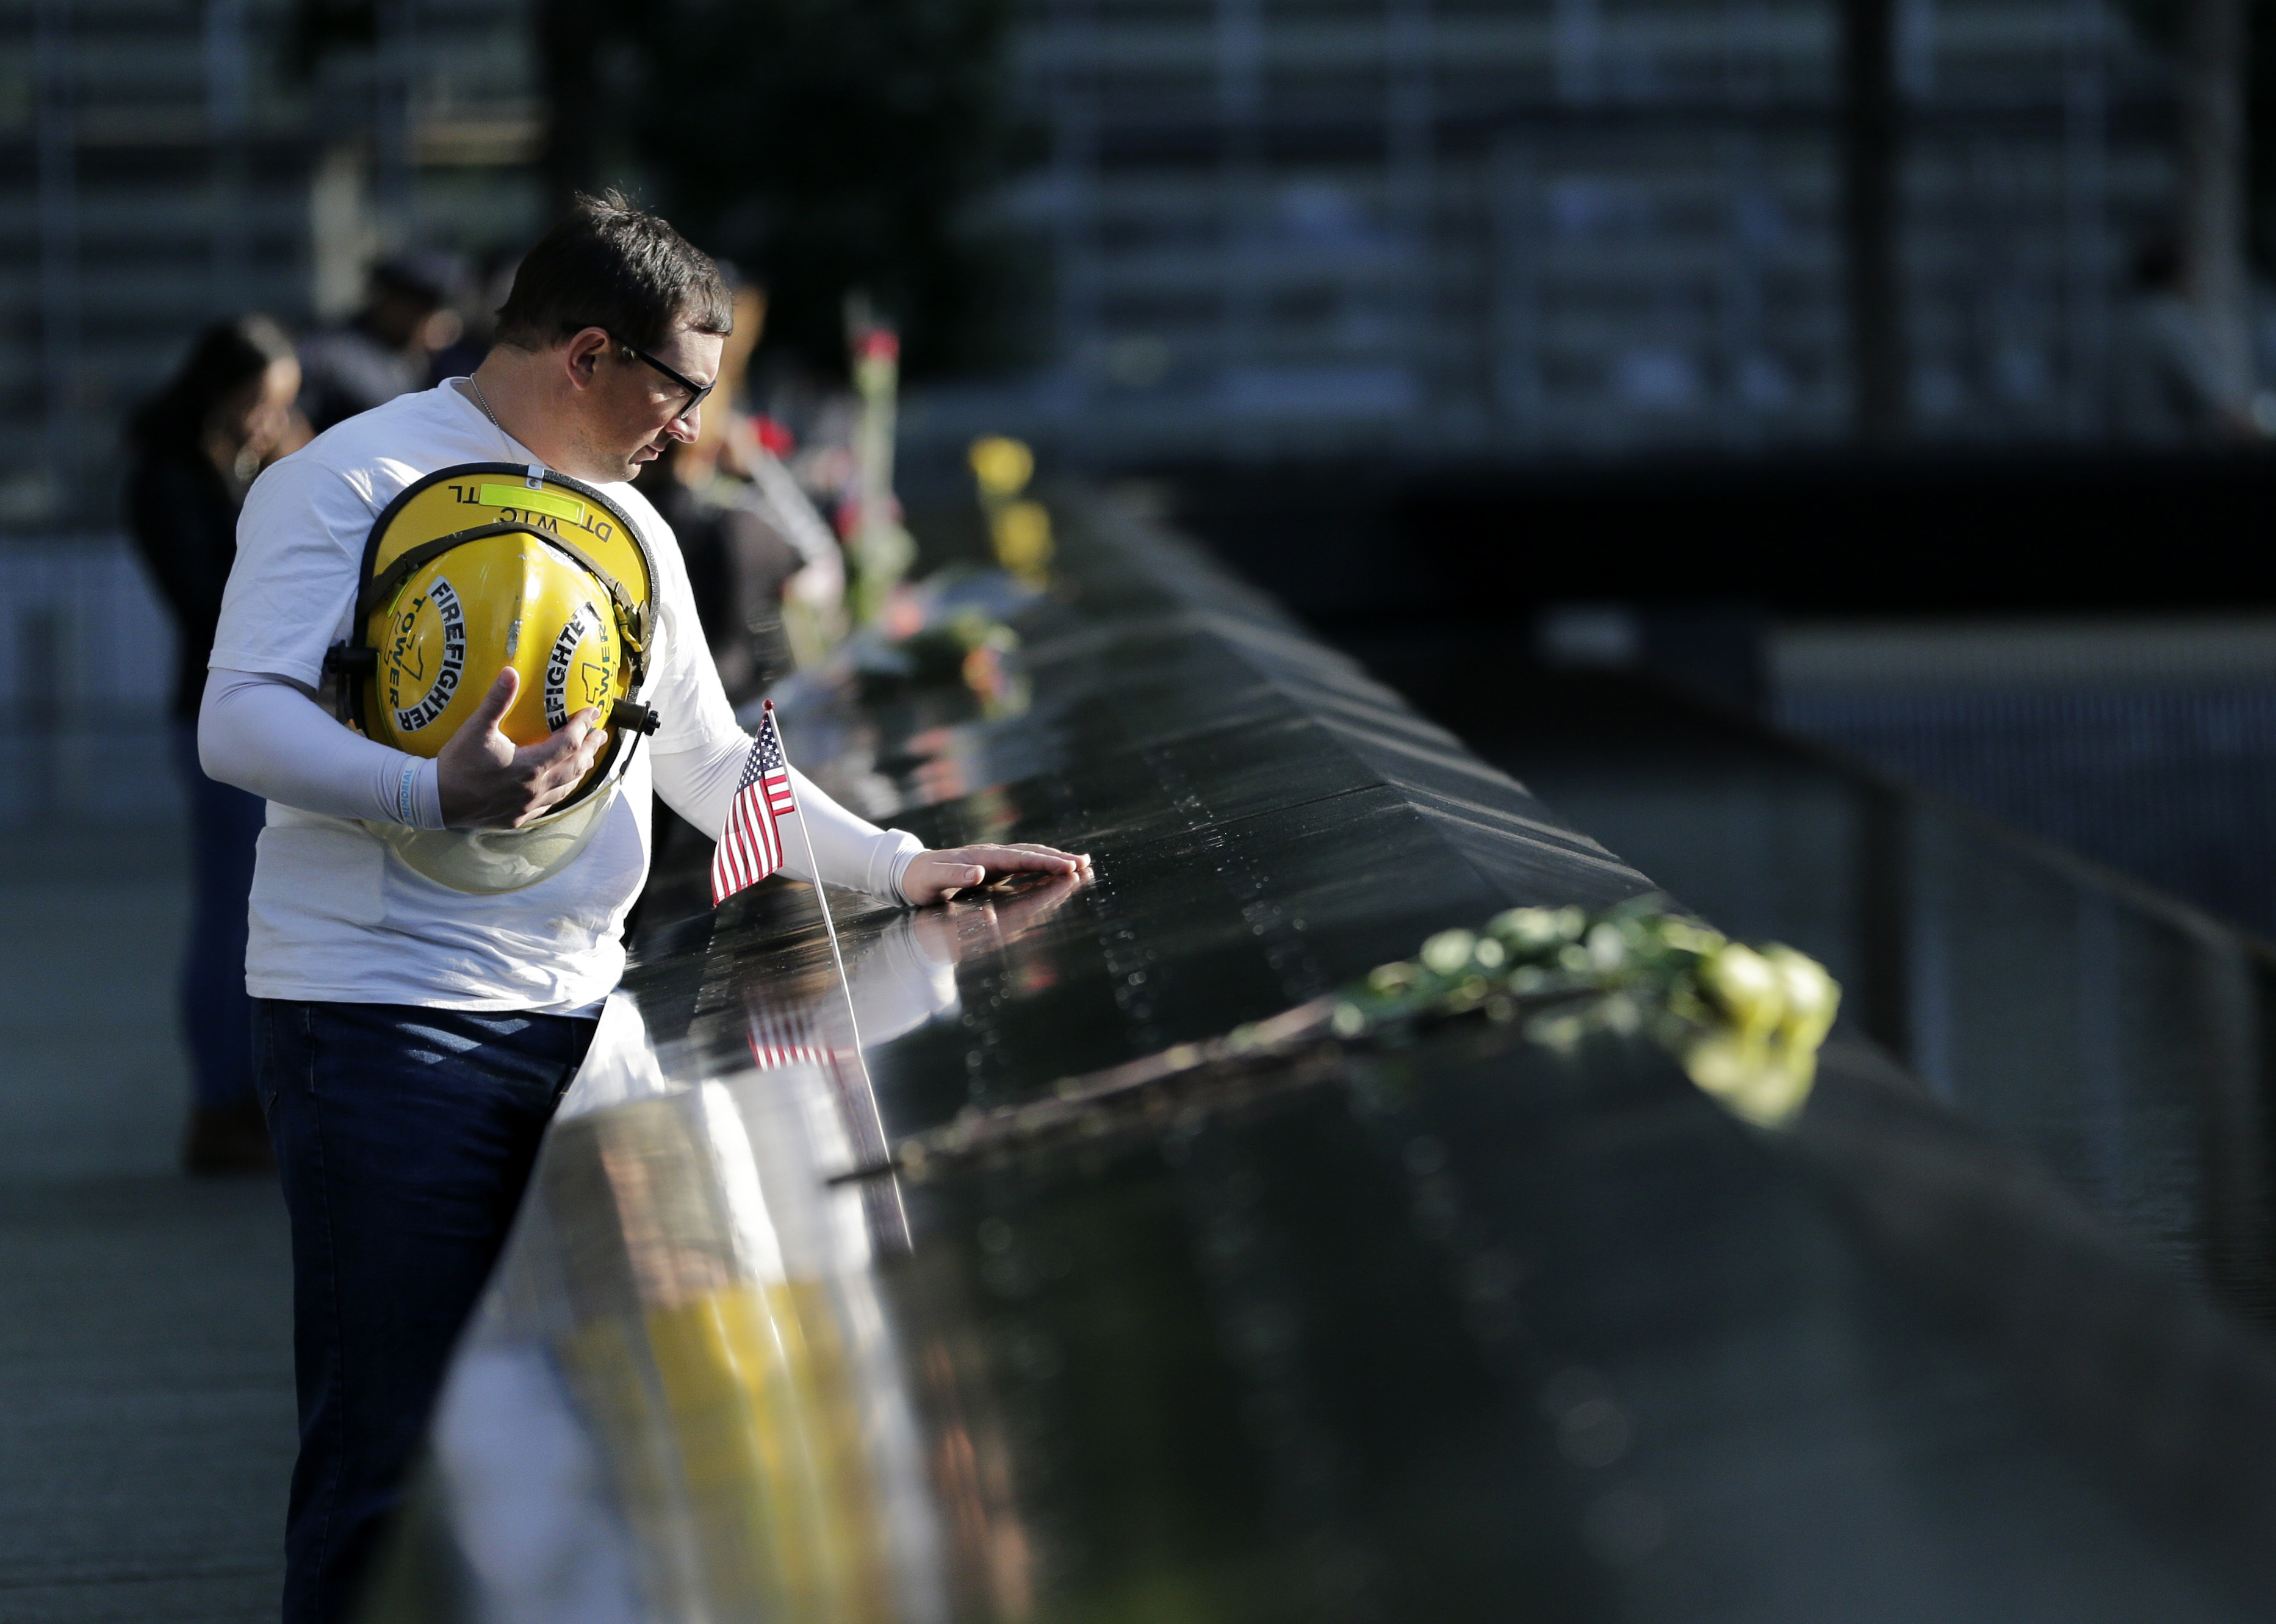 "<div class=""meta image-caption""><div class=""origin-logo origin-image none""><span>none</span></div><span class=""caption-text"">James Taormina, whose brother Dennis Taormina was killed during the Sept. 11 attacks stands by the side of the north waterfall pool on Monday, Sept. 11, 2017. (AP Photo/Seth Wenig)</span></div>"